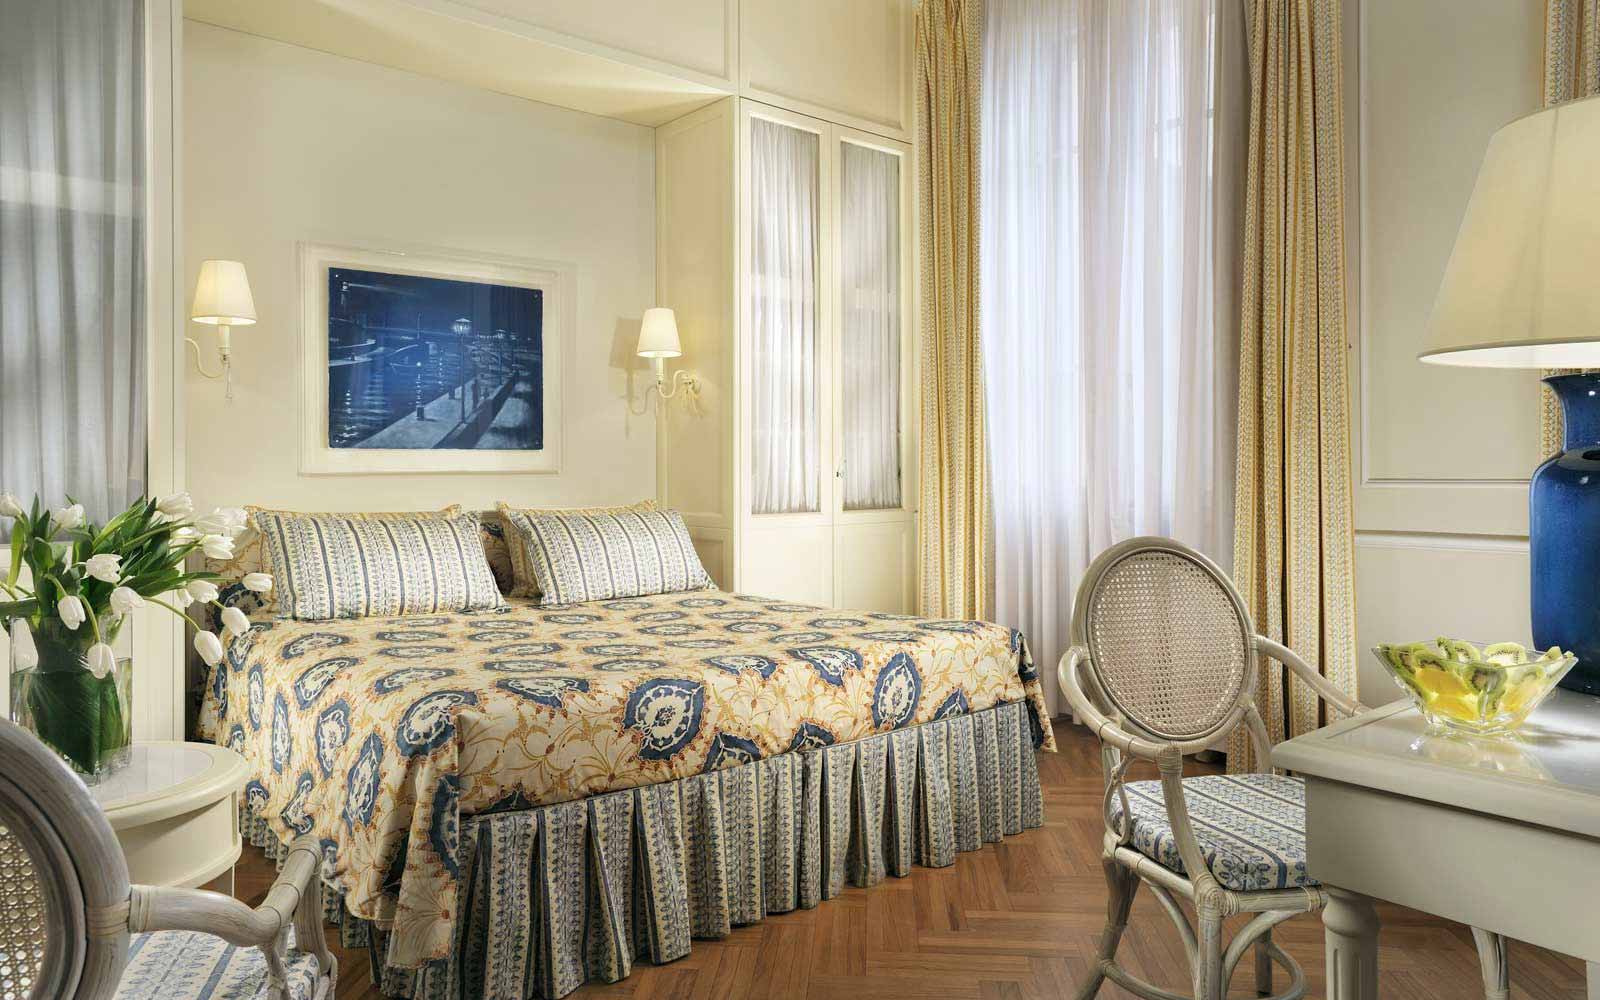 Classic room hillside view at Grand Hotel Principe di Piemonte